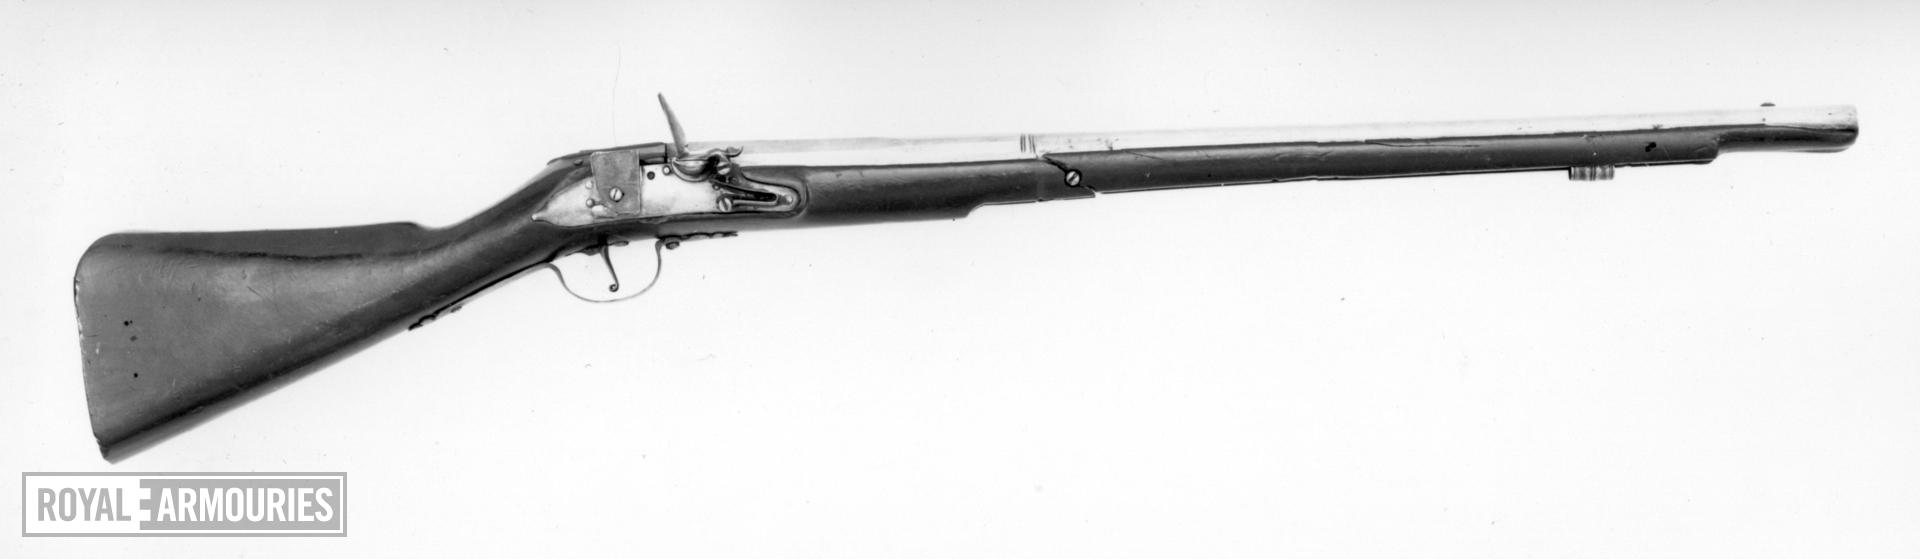 Flintlock military carbine